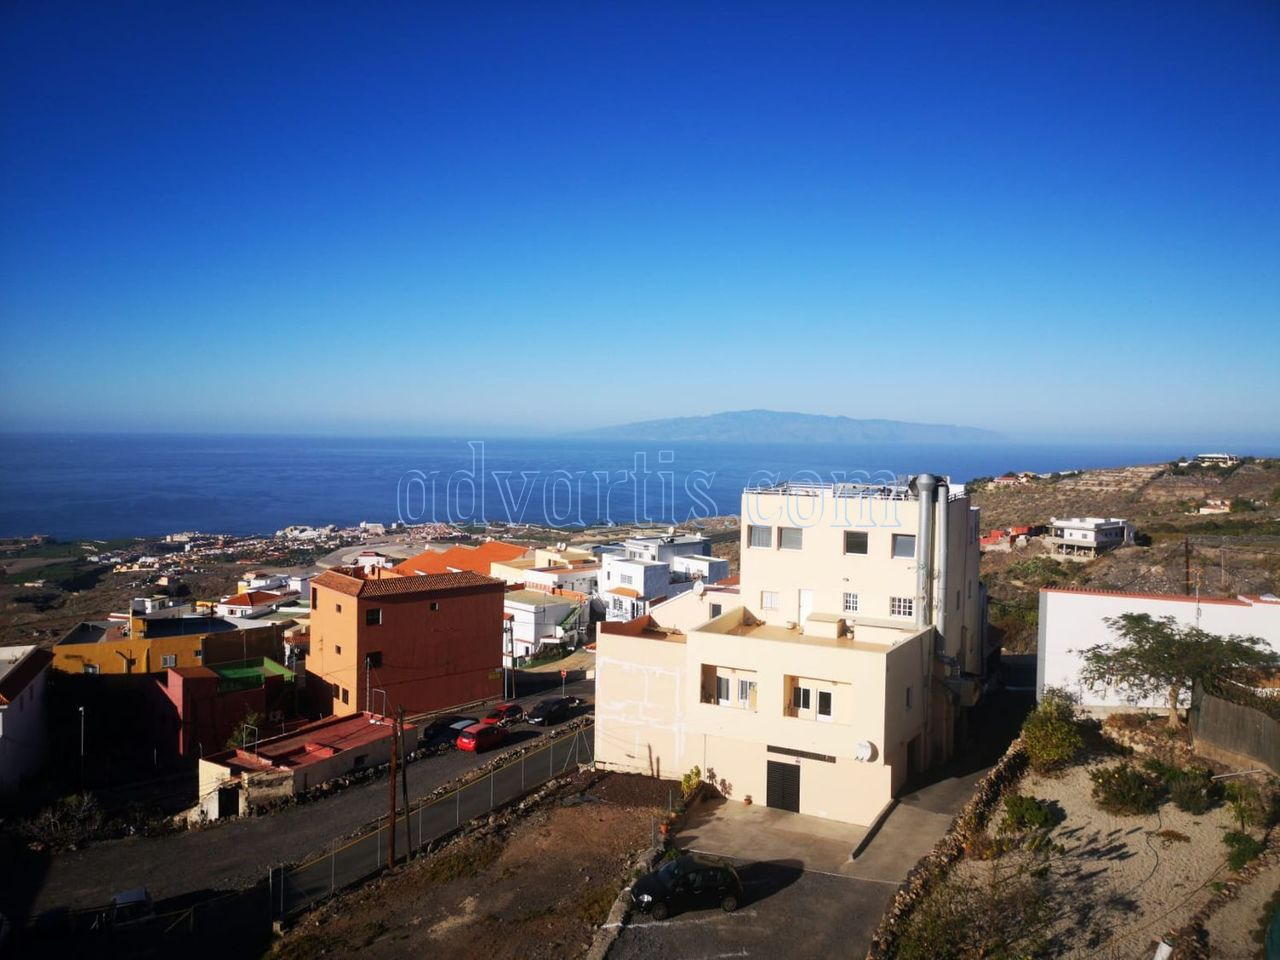 Duplex apartment for sale in Los Menores, Adeje, Tenerife €164.900